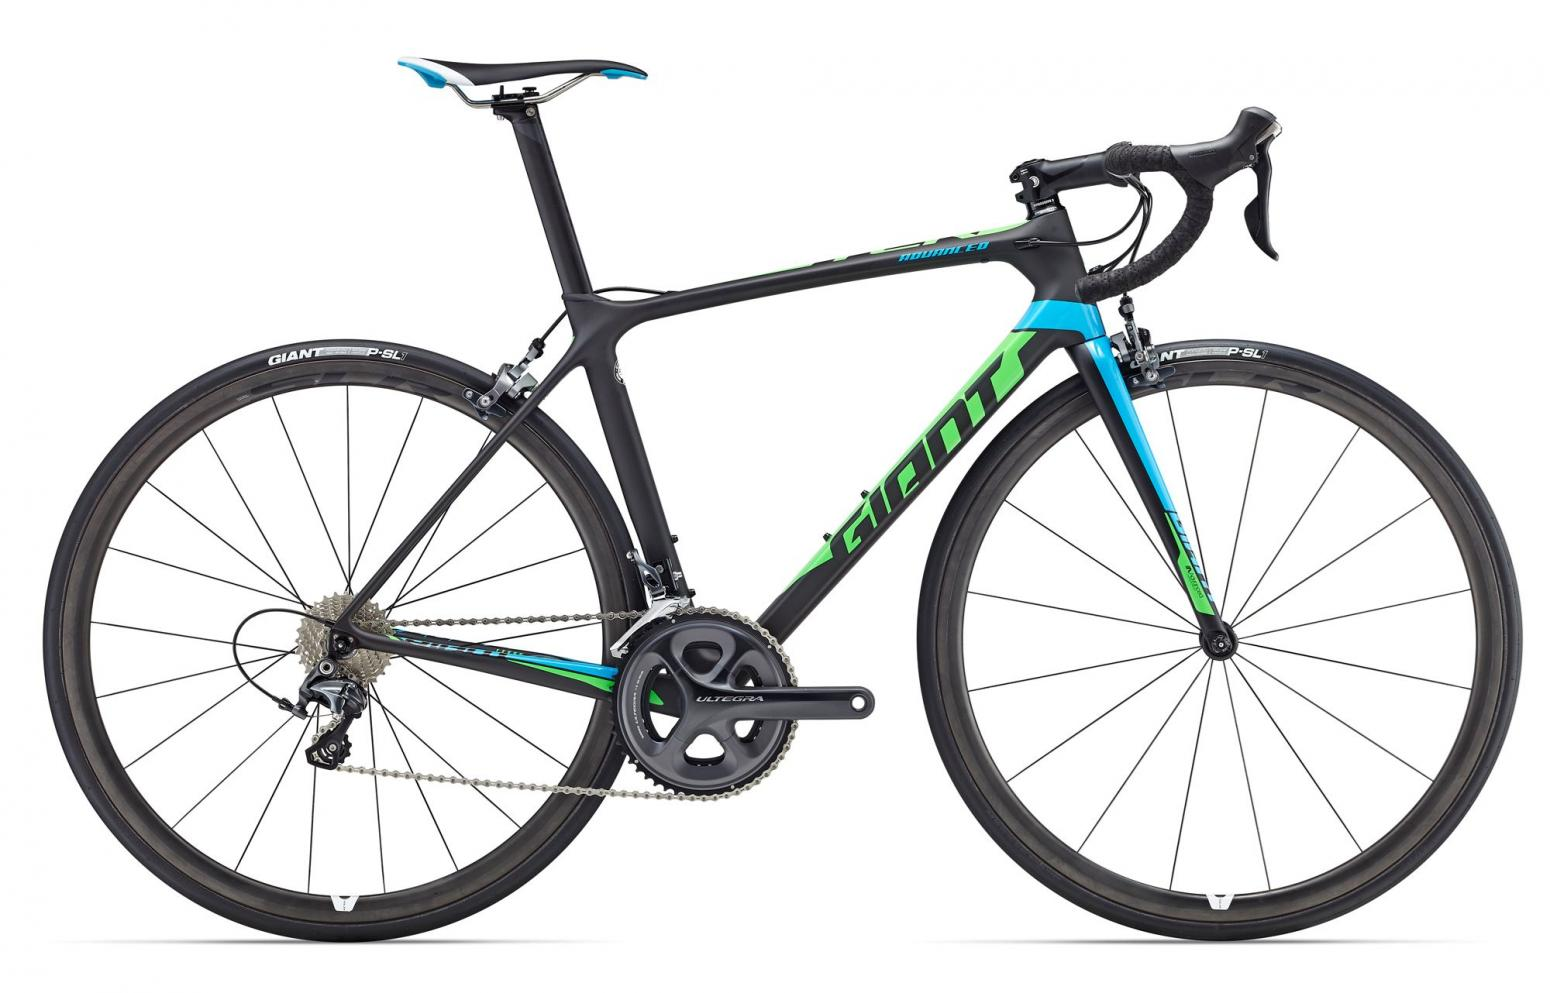 Giant Rennvelo TCR Advanced Pro 0 2016